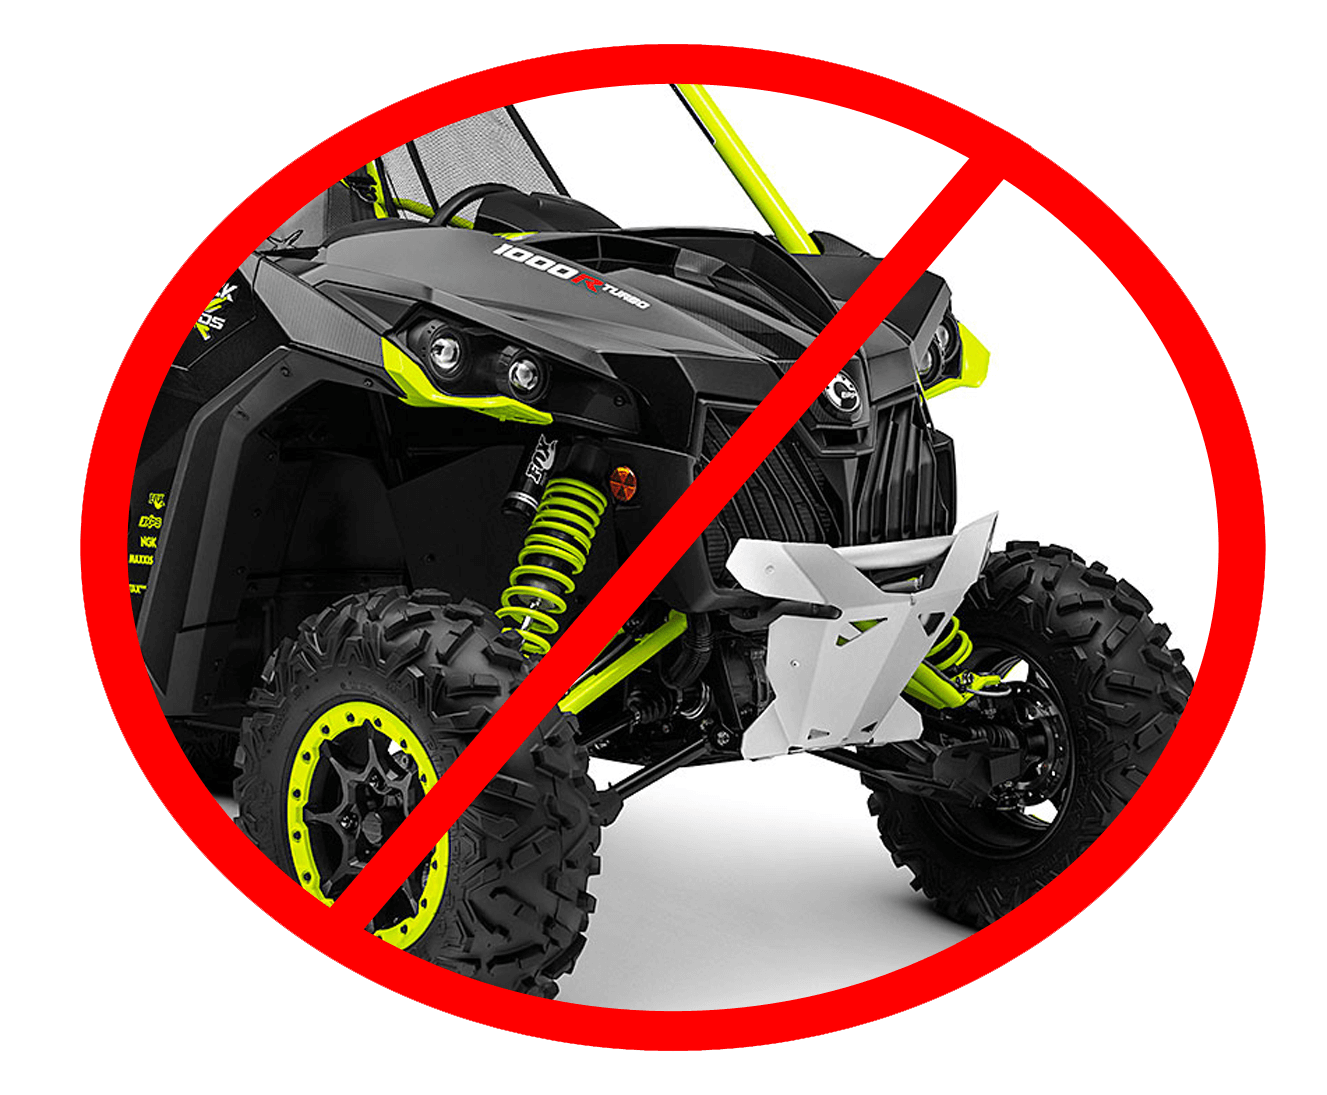 hight resolution of requires the purchase of utv wek wire extension kit due to location of battery